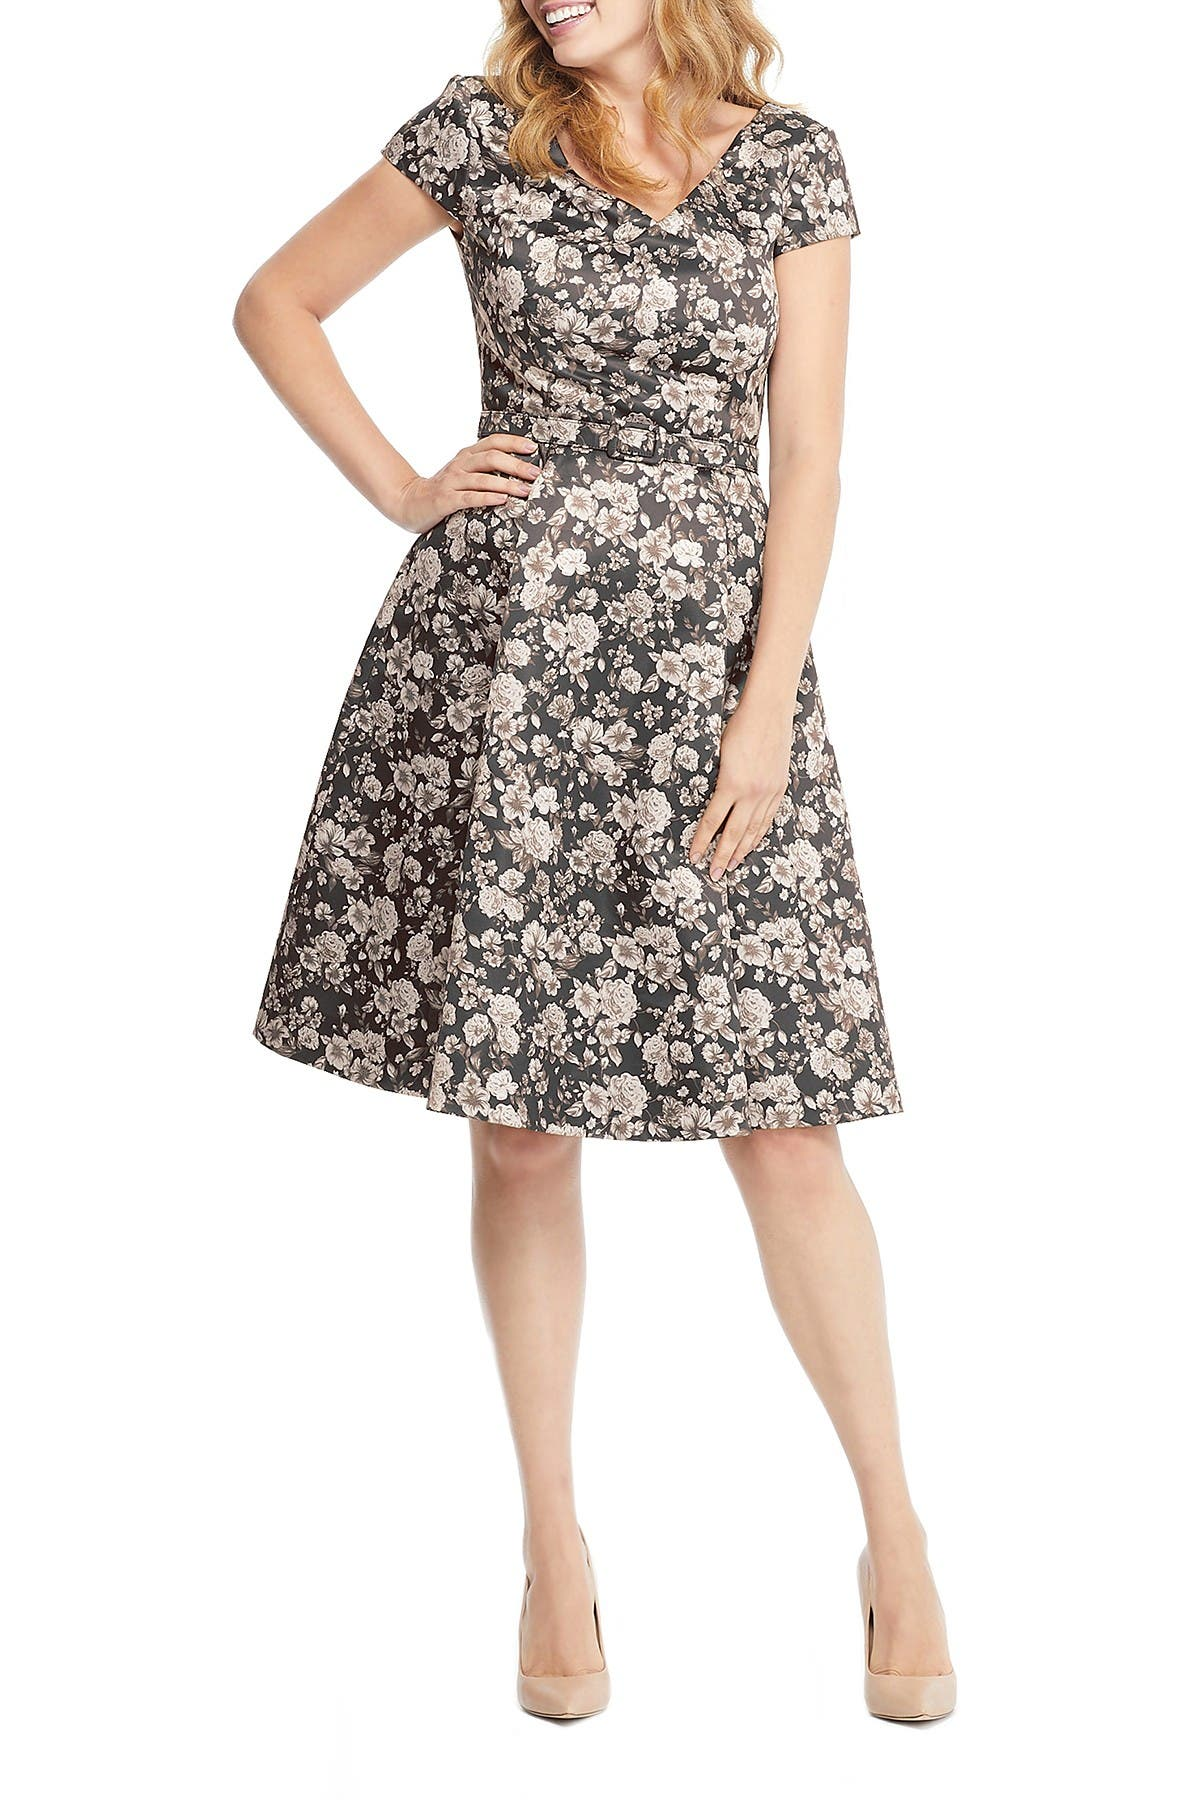 Image of Gal Meets Glam Elle Draped Neck Floral Print Dress